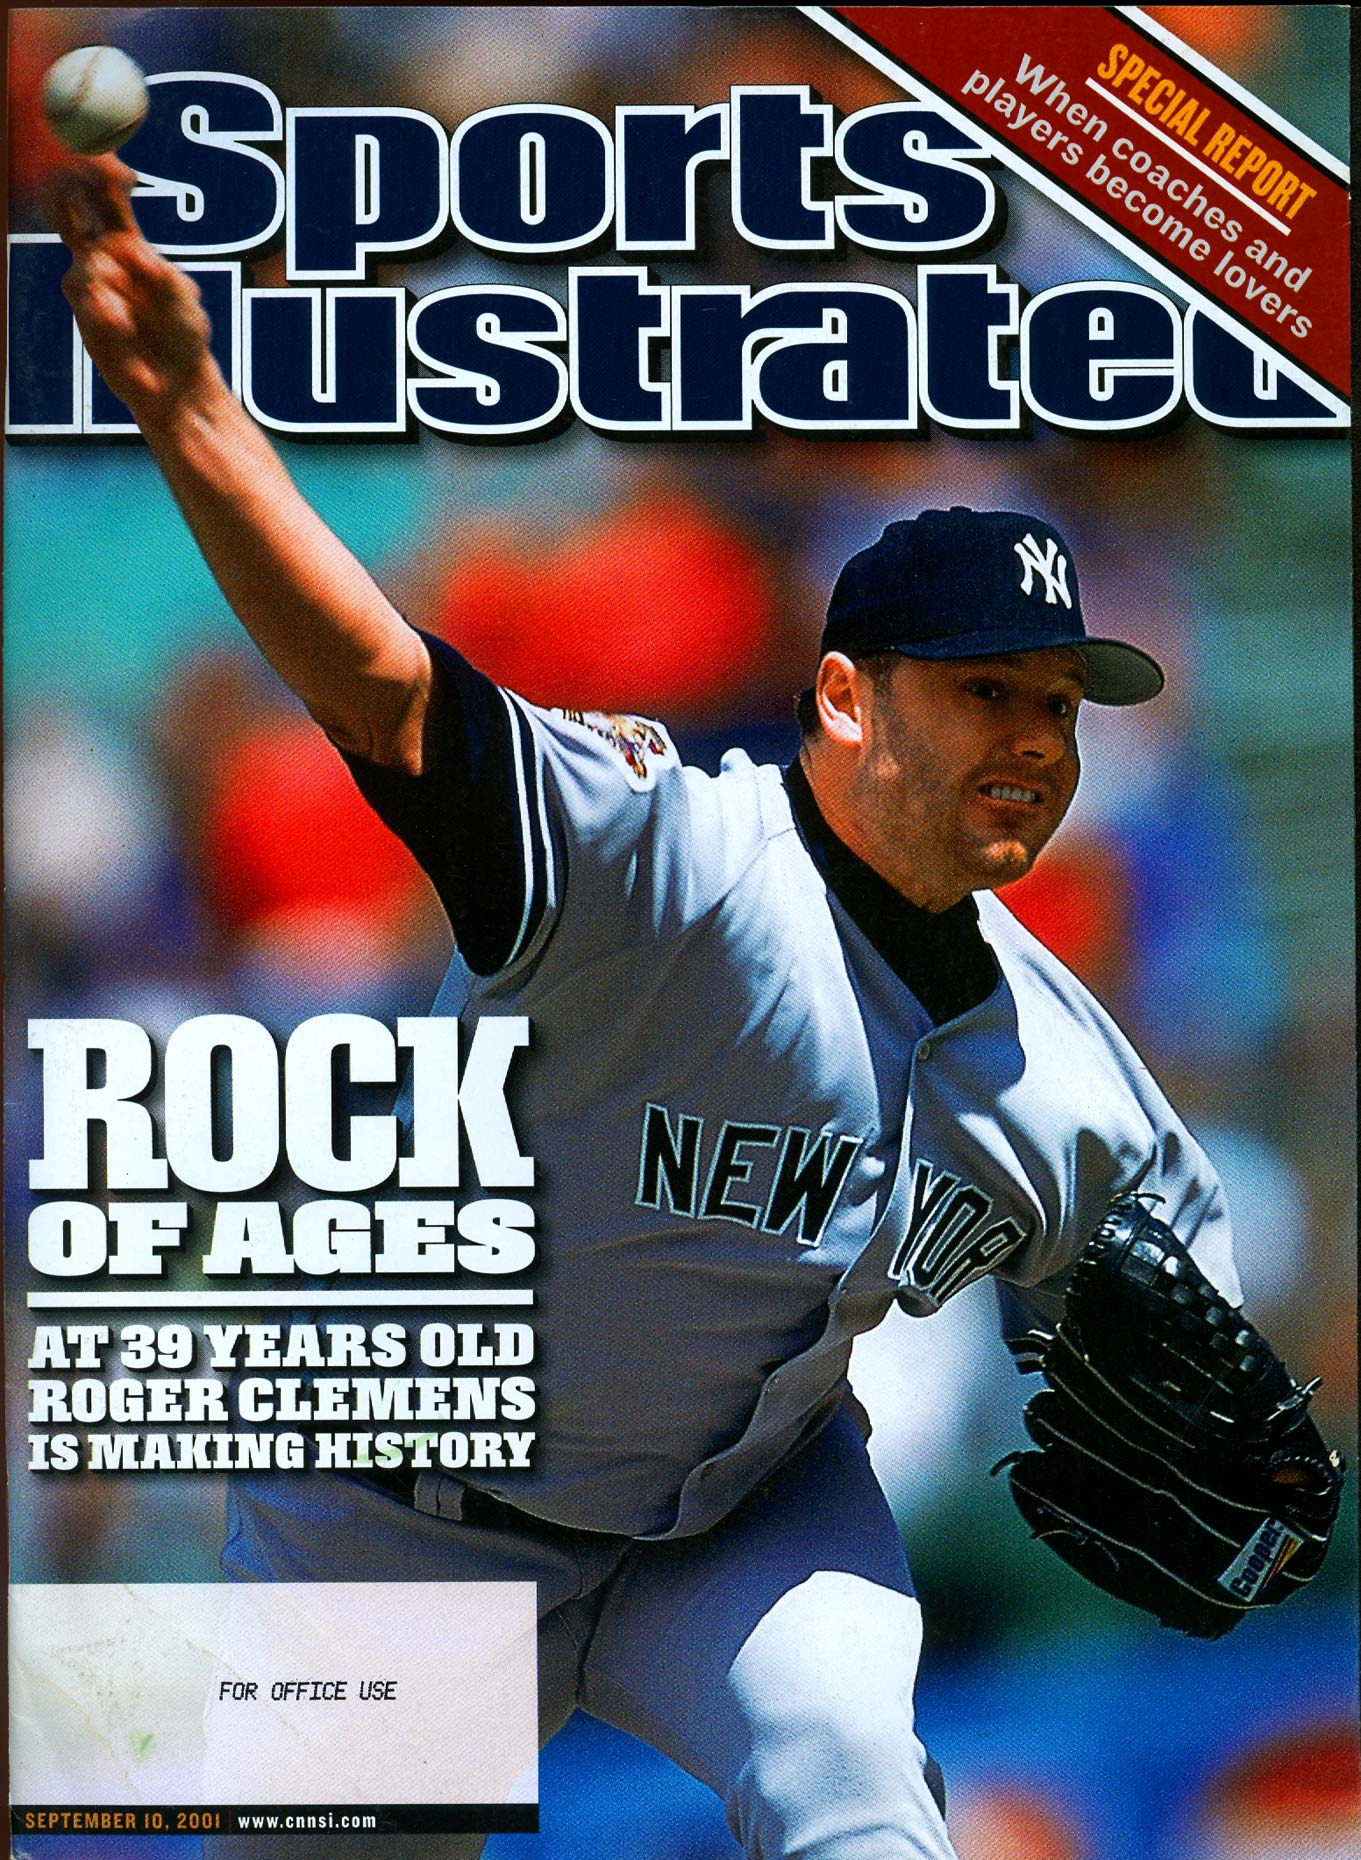 Roger Clemens | New York Yankees | Cover of Sports Illustrated